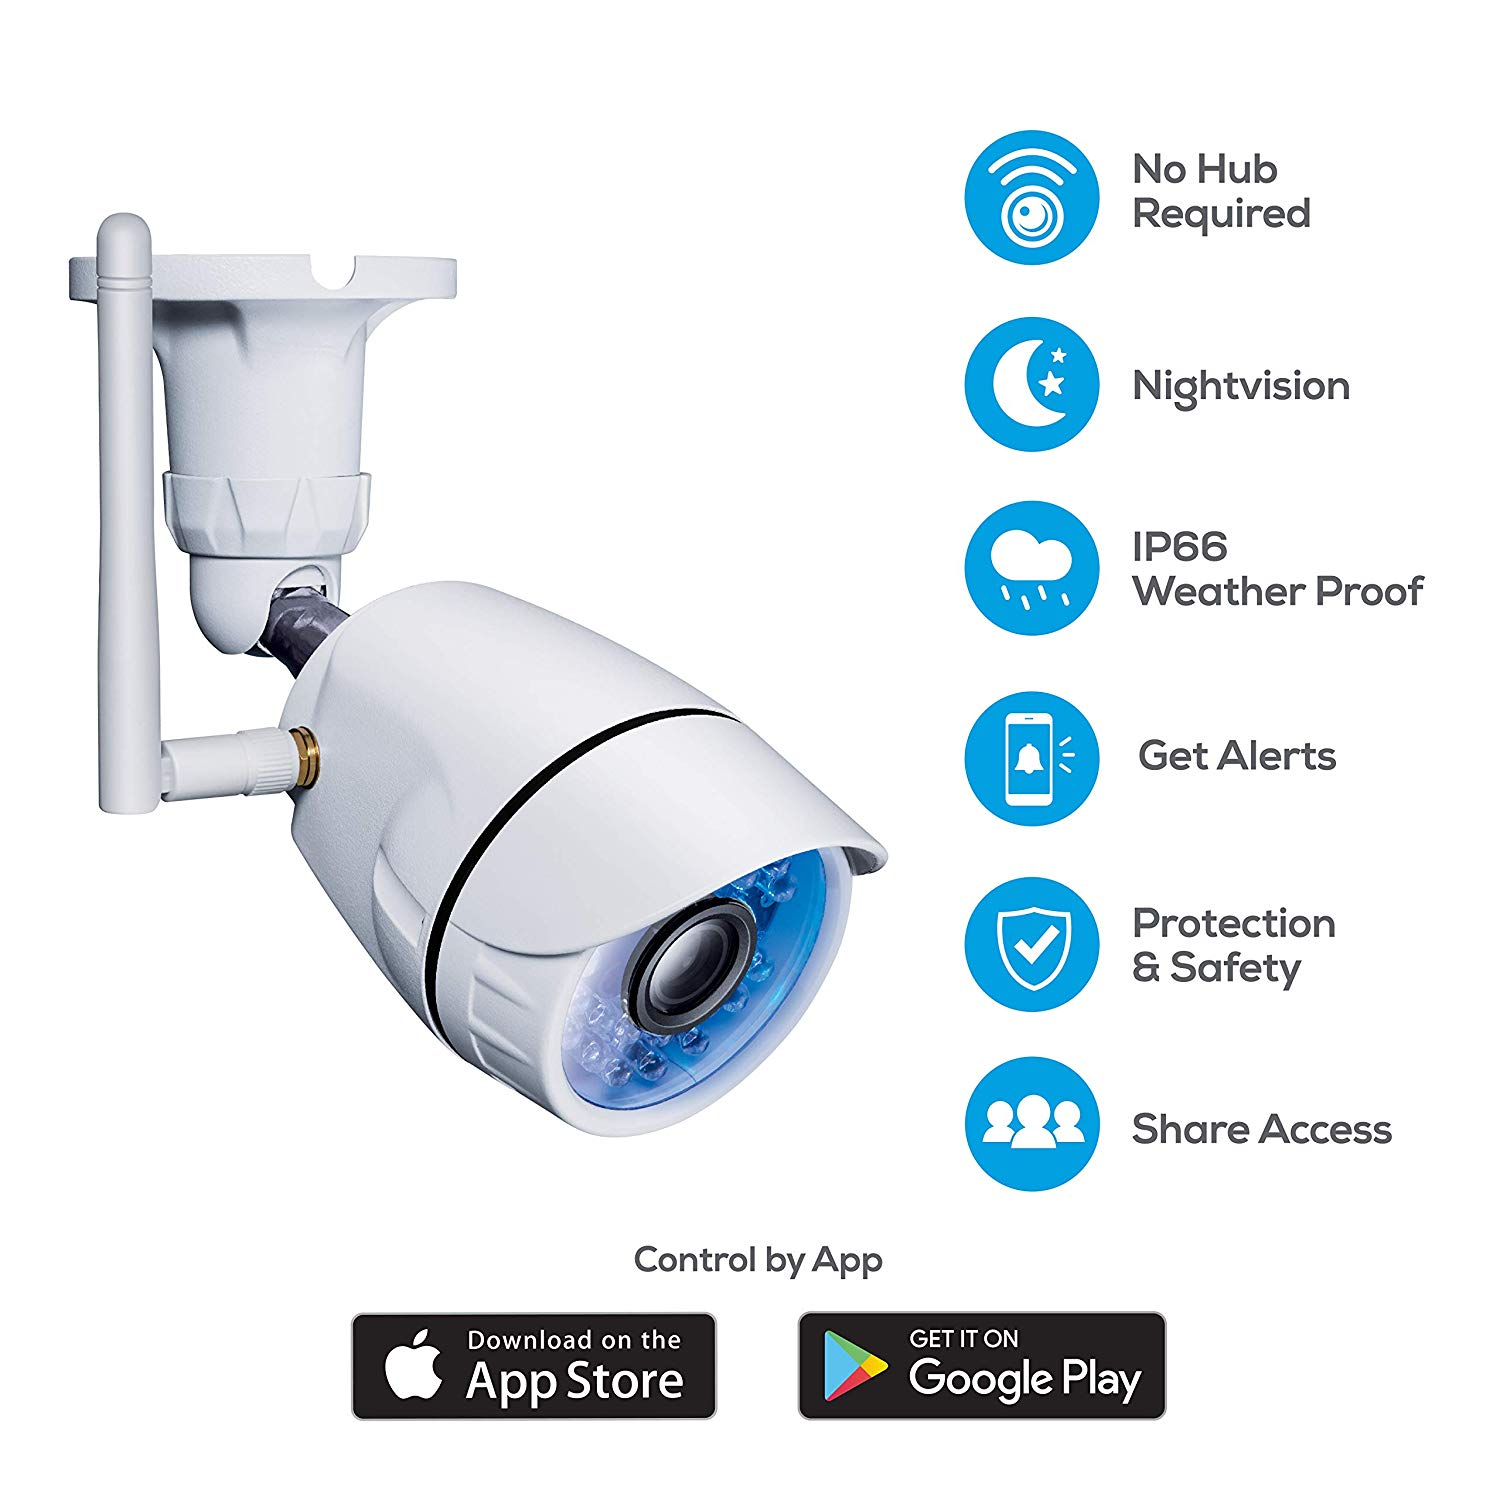 Geeni Hawk Outdoor Smart Wi-Fi Security Camera with Night Vision, Motion  Alerts and IP66 Weatherproof, White